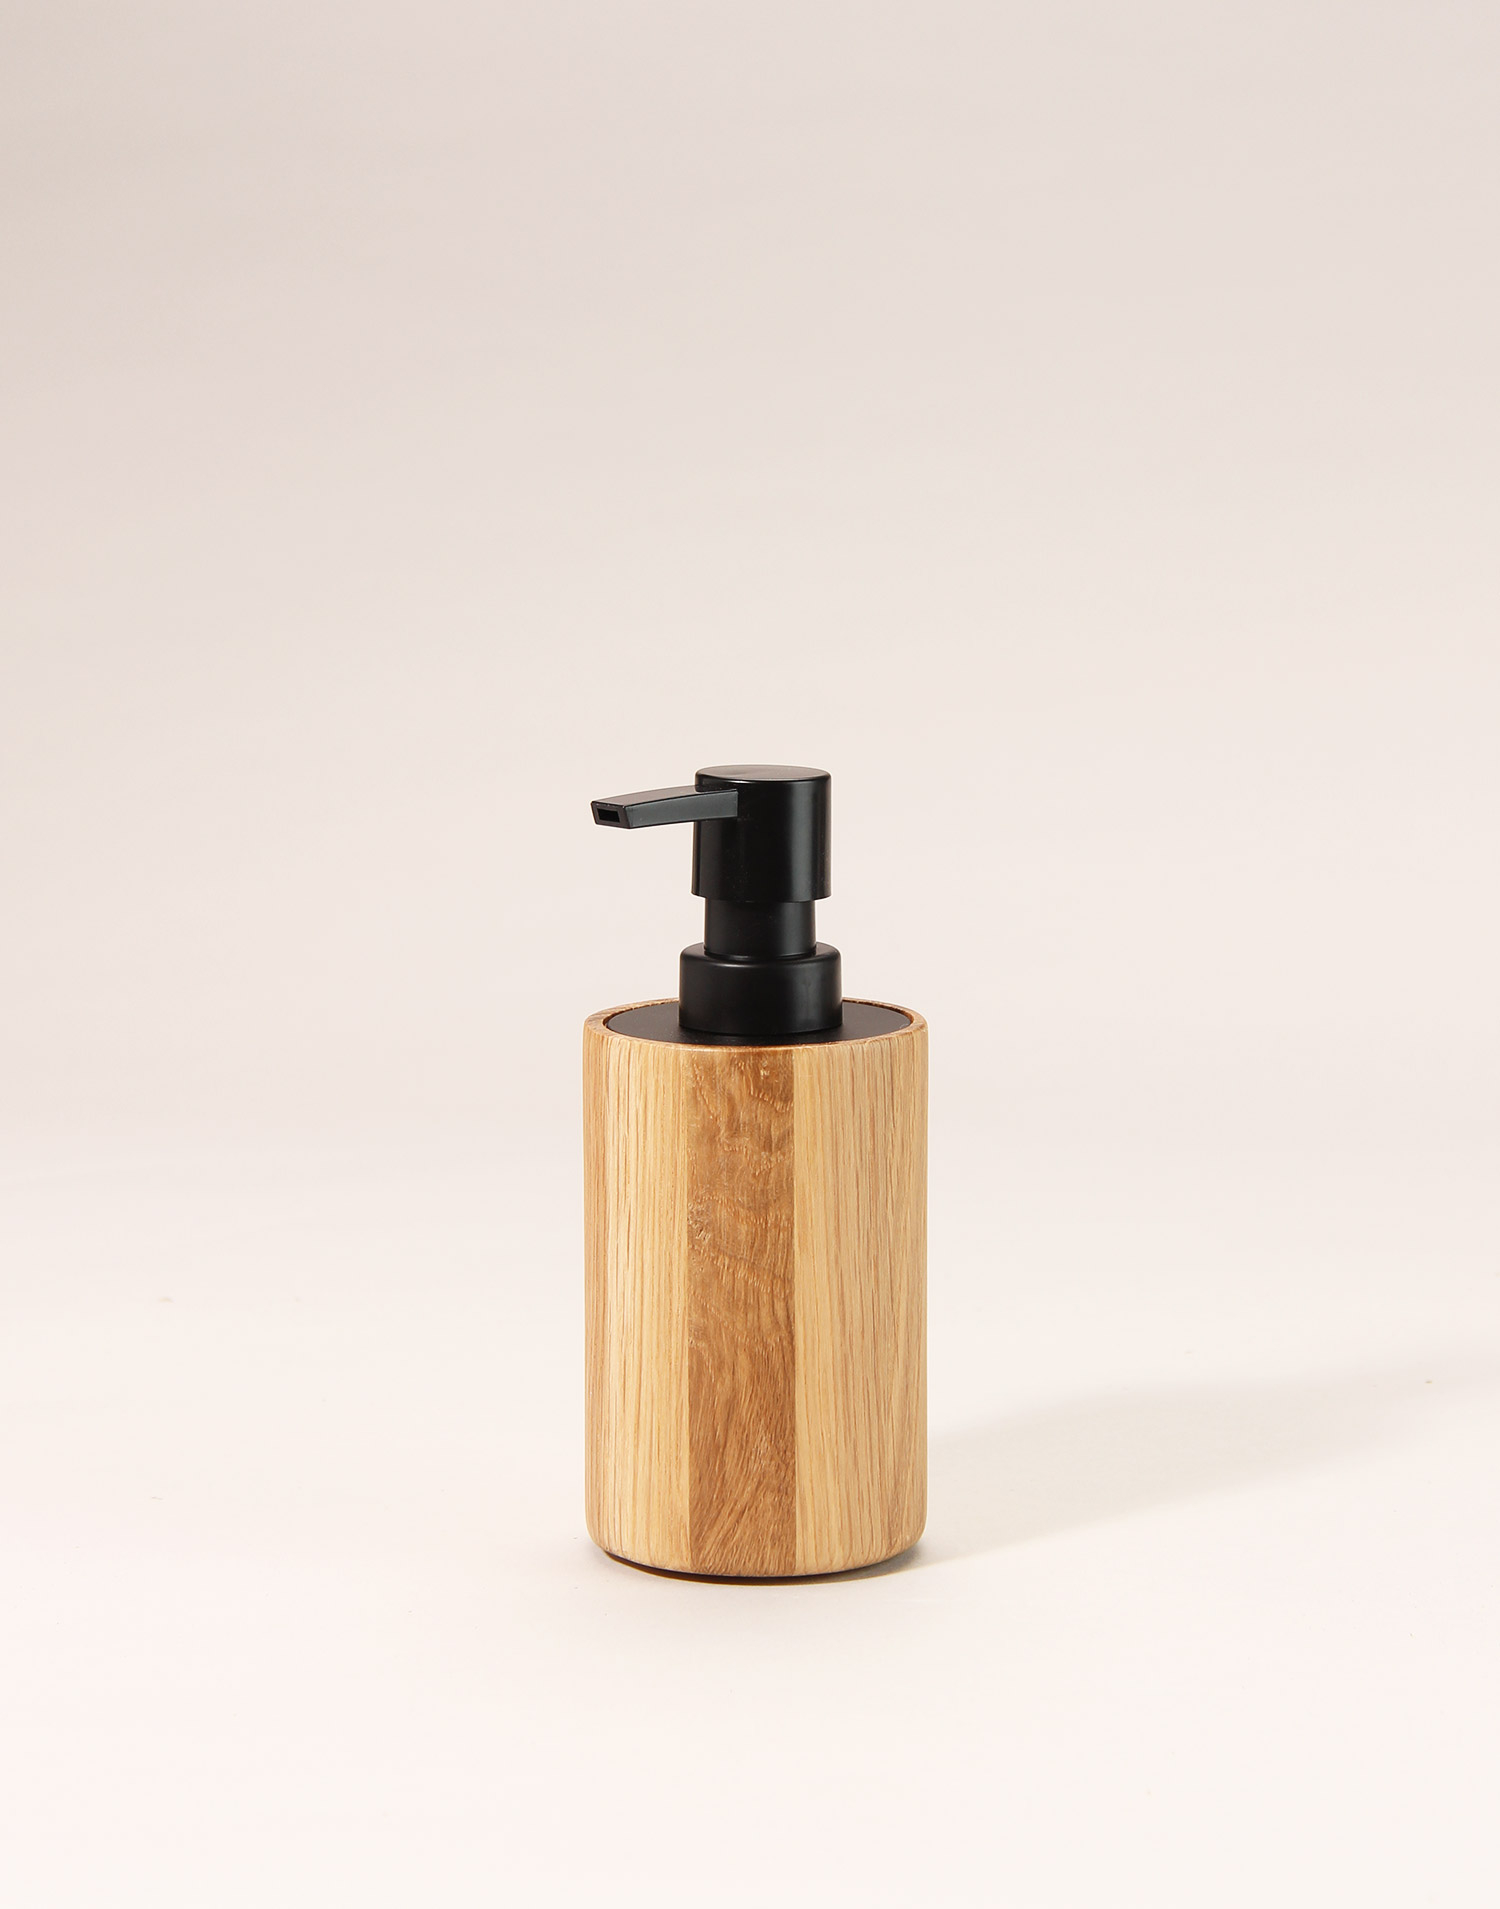 Oak soap dispenser